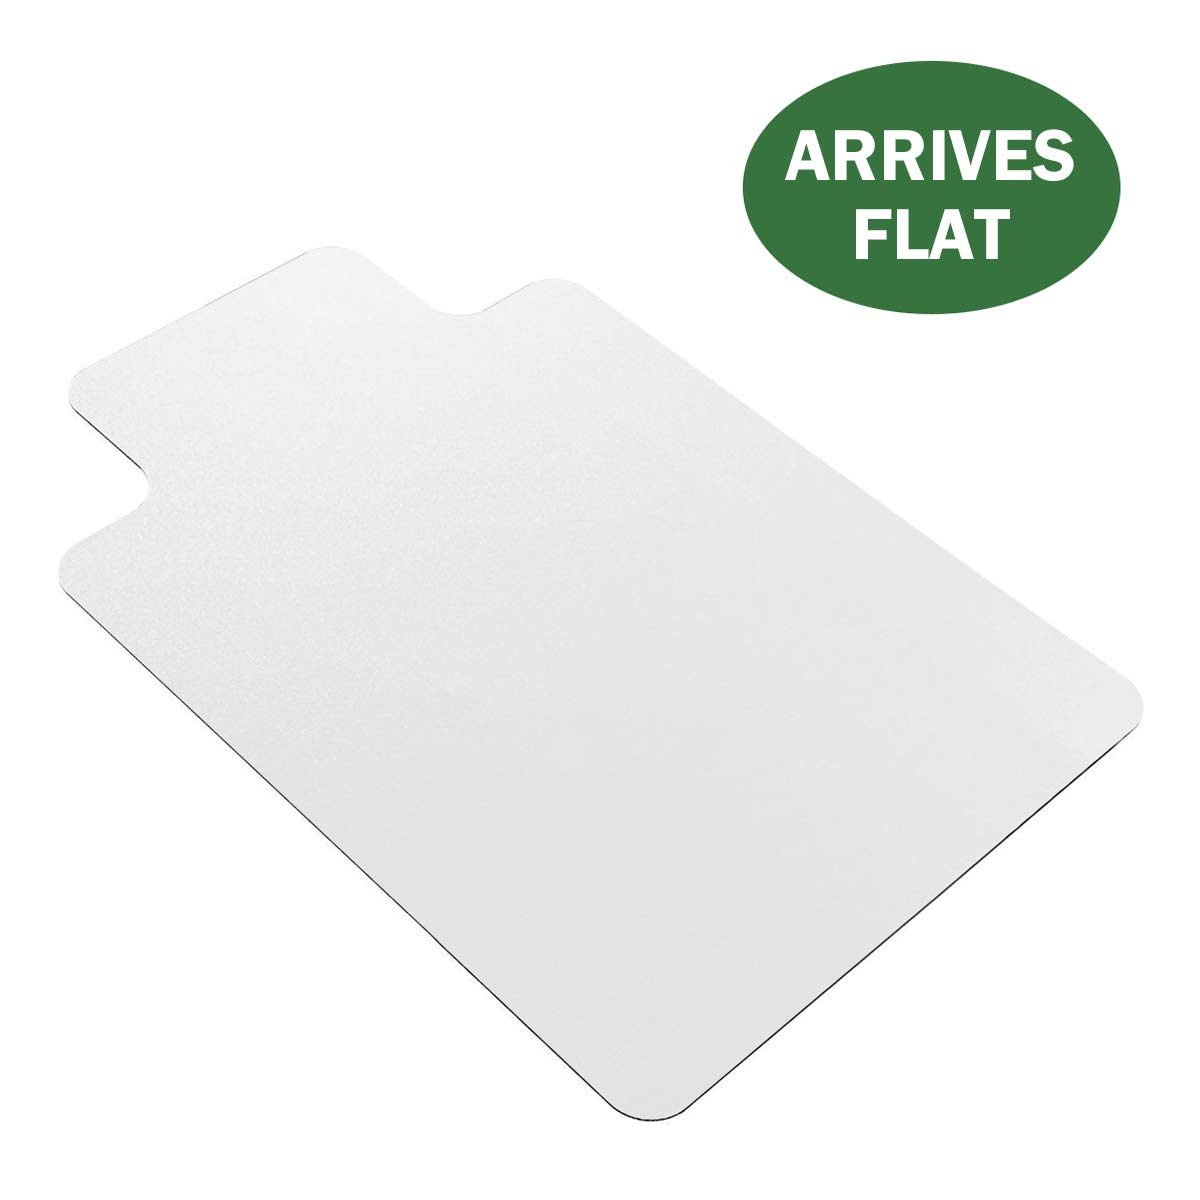 HGmart Office Chair Mat for Home Office Desk Chairs Anti-Slip Transparent Floor Protector for Hardwood Floor Ships Flat Ready to Use 48''x36'' with Lip 1 Pack